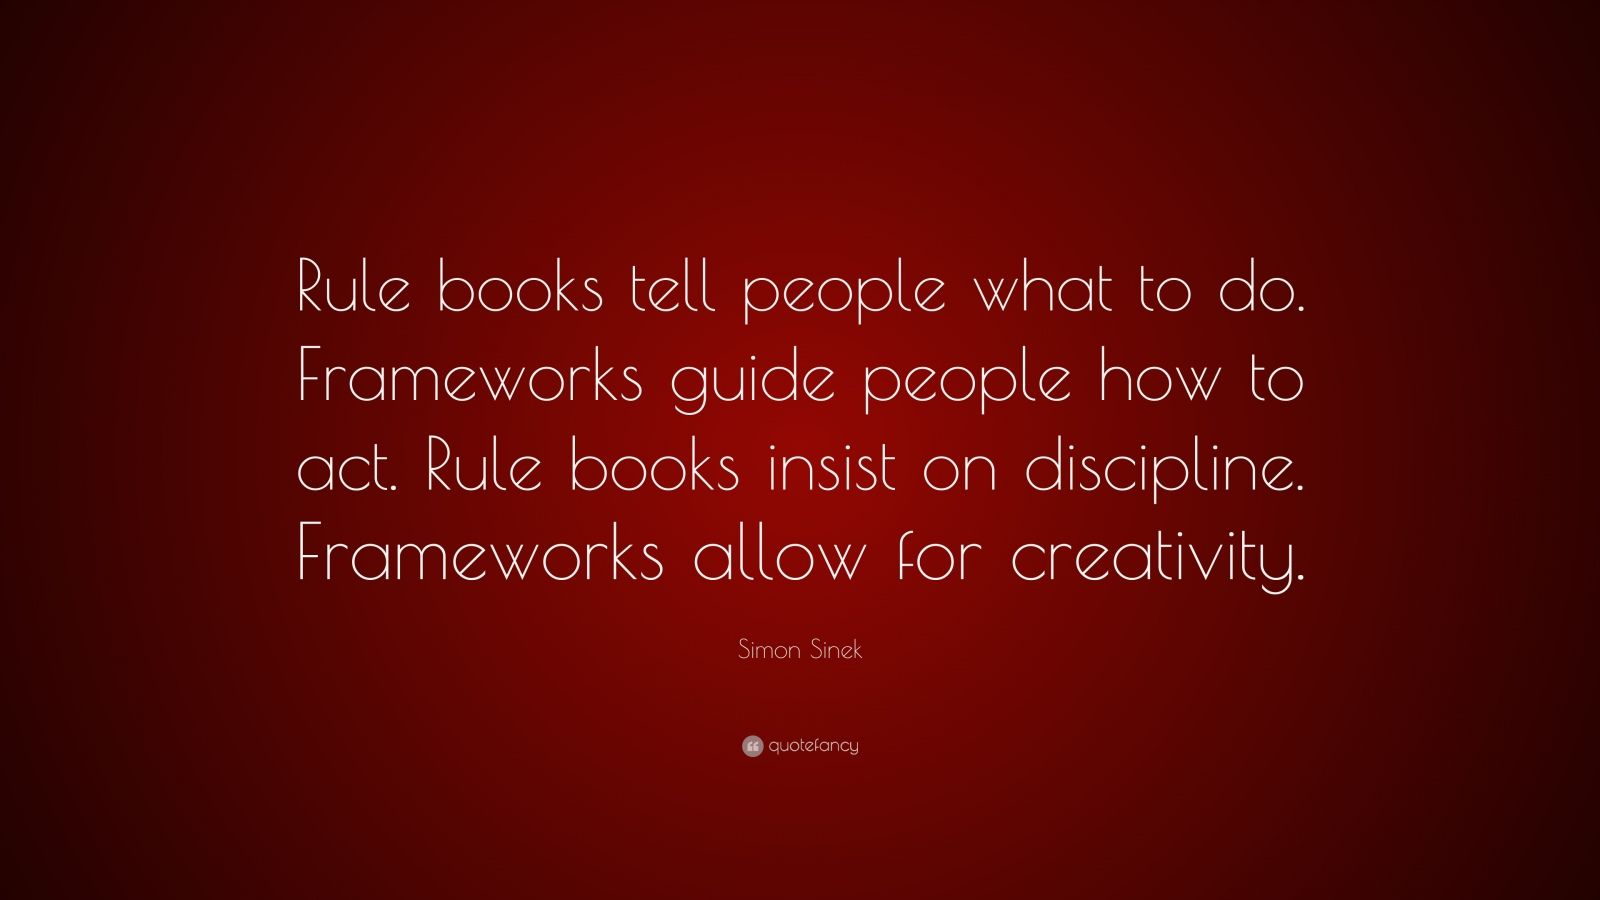 "Simon Sinek Quote: ""Rule books tell people what to do. Frameworks guide people how to act. Rule books insist on discipline. Frameworks allow for creativity."""